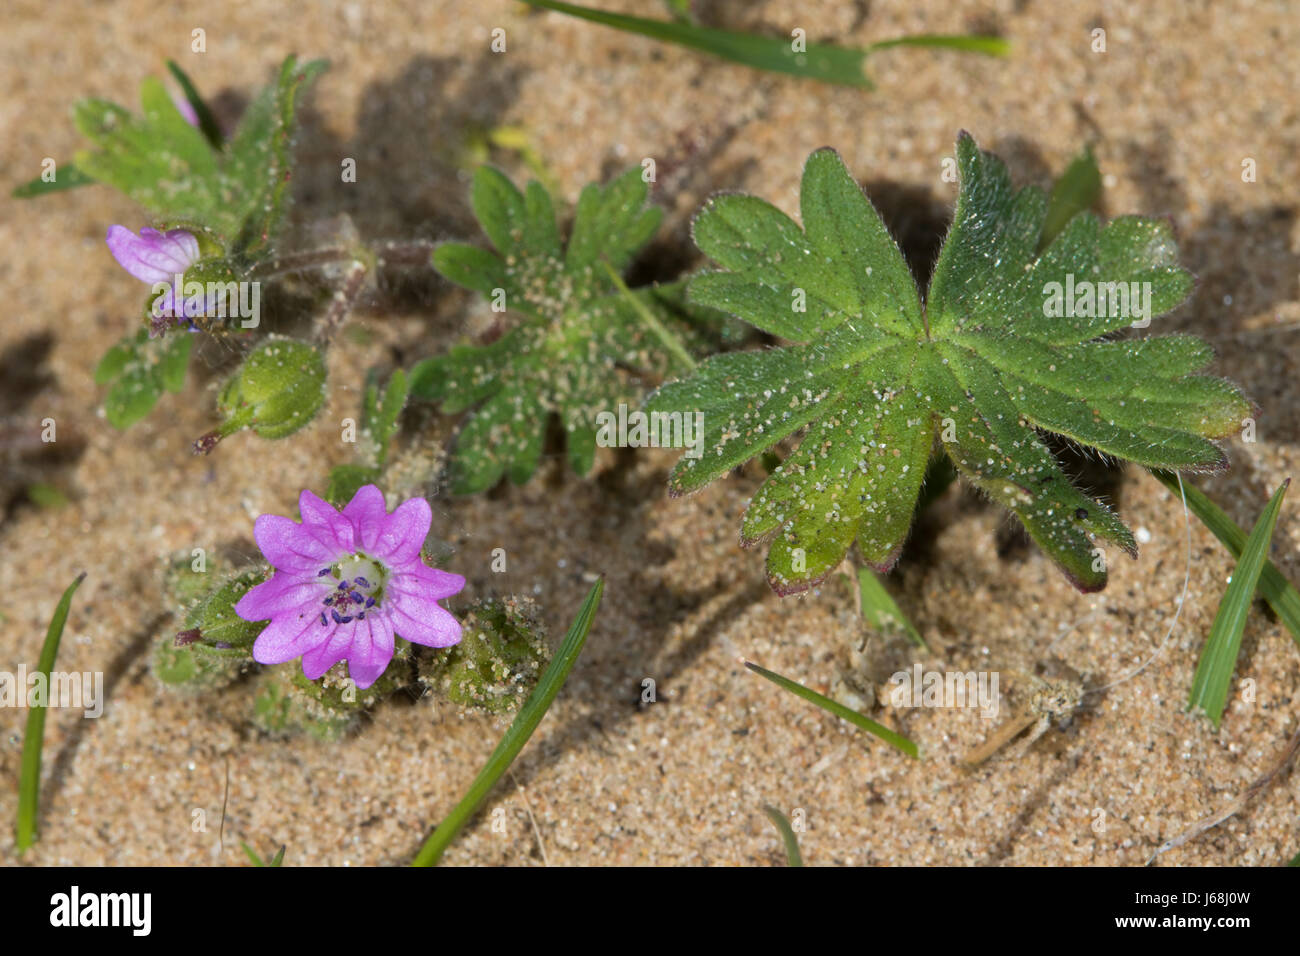 Dove's-foot Cranesbill (Geranium molle) flower - Stock Image